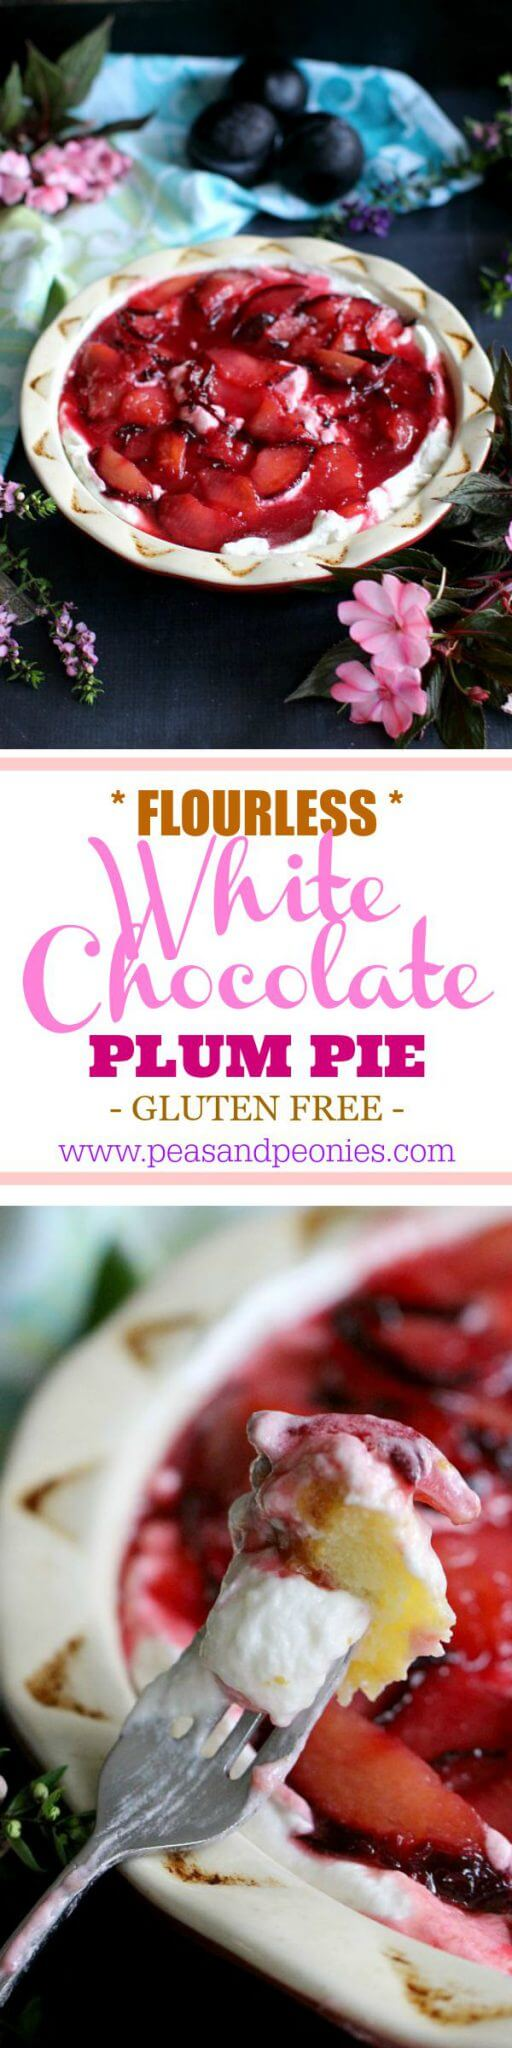 Flourless White Chocolate Plum Pie